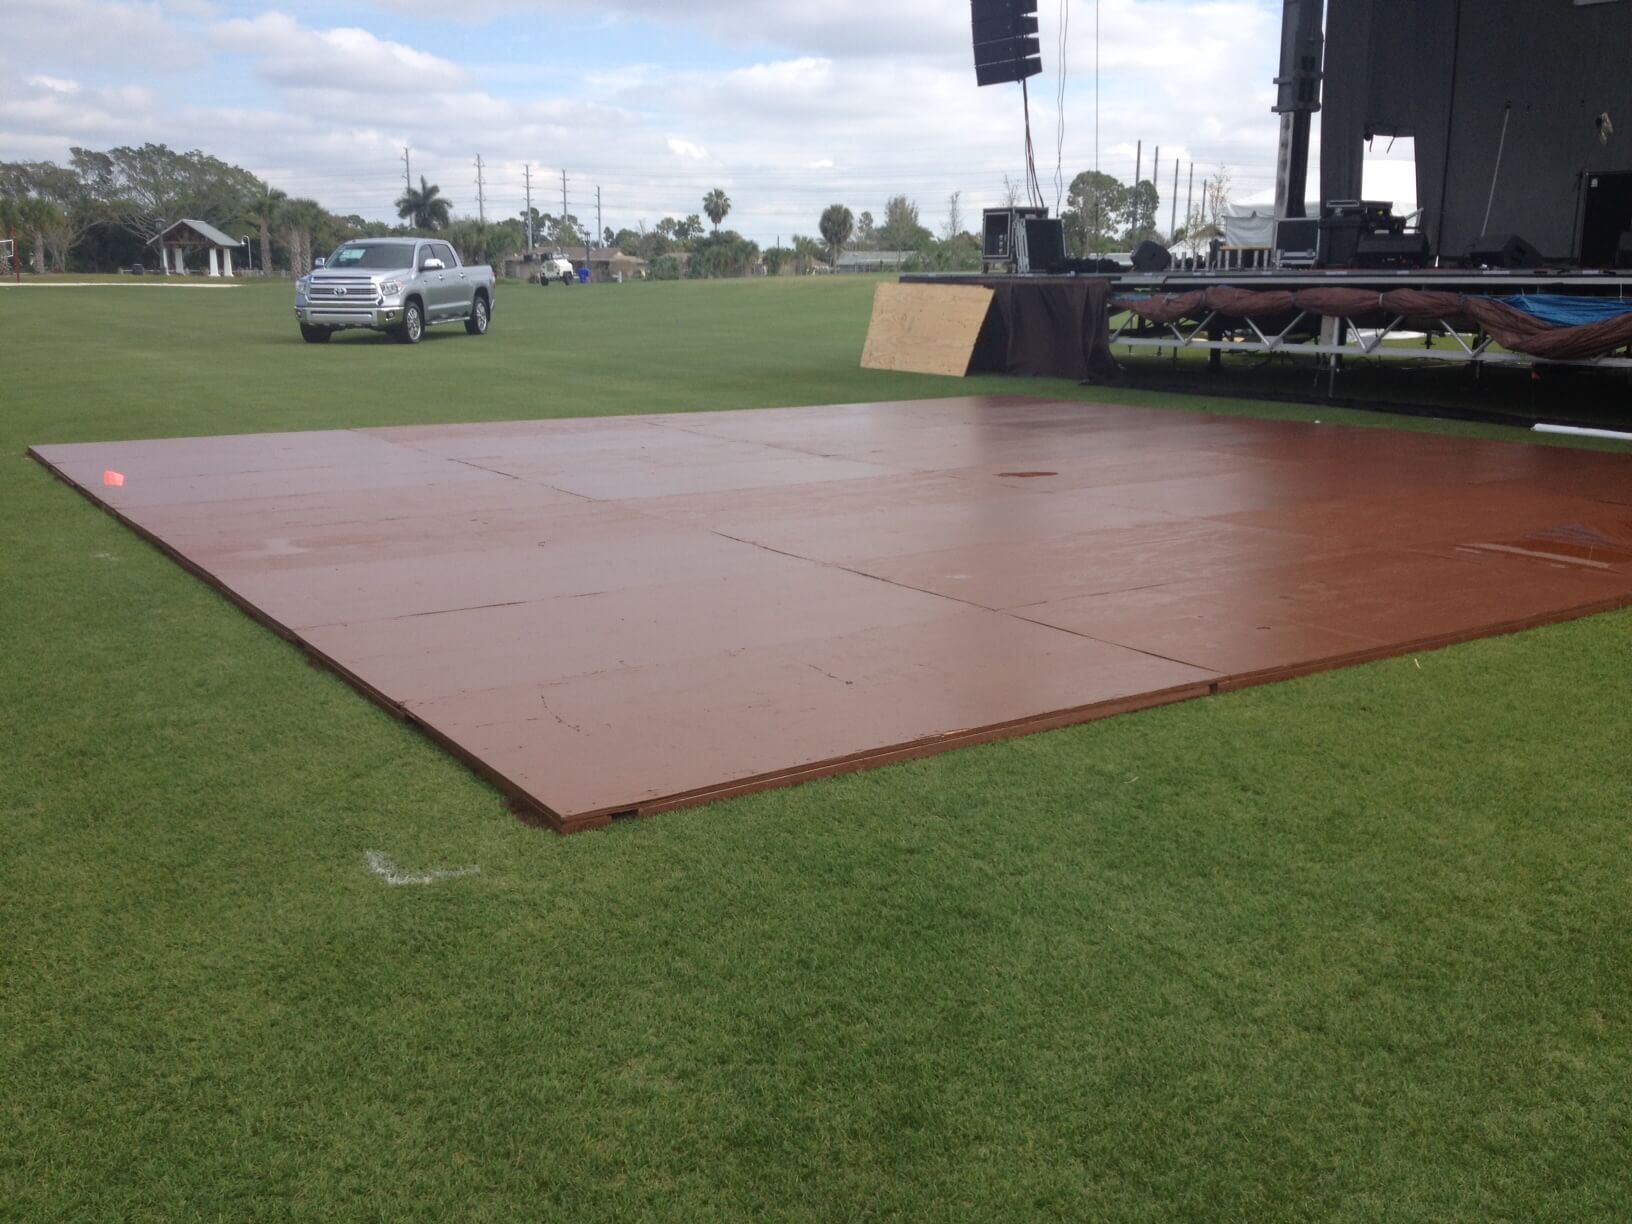 Temporary Flooring Staging Dance Floor Rentals Outdoor Flooring Grimes